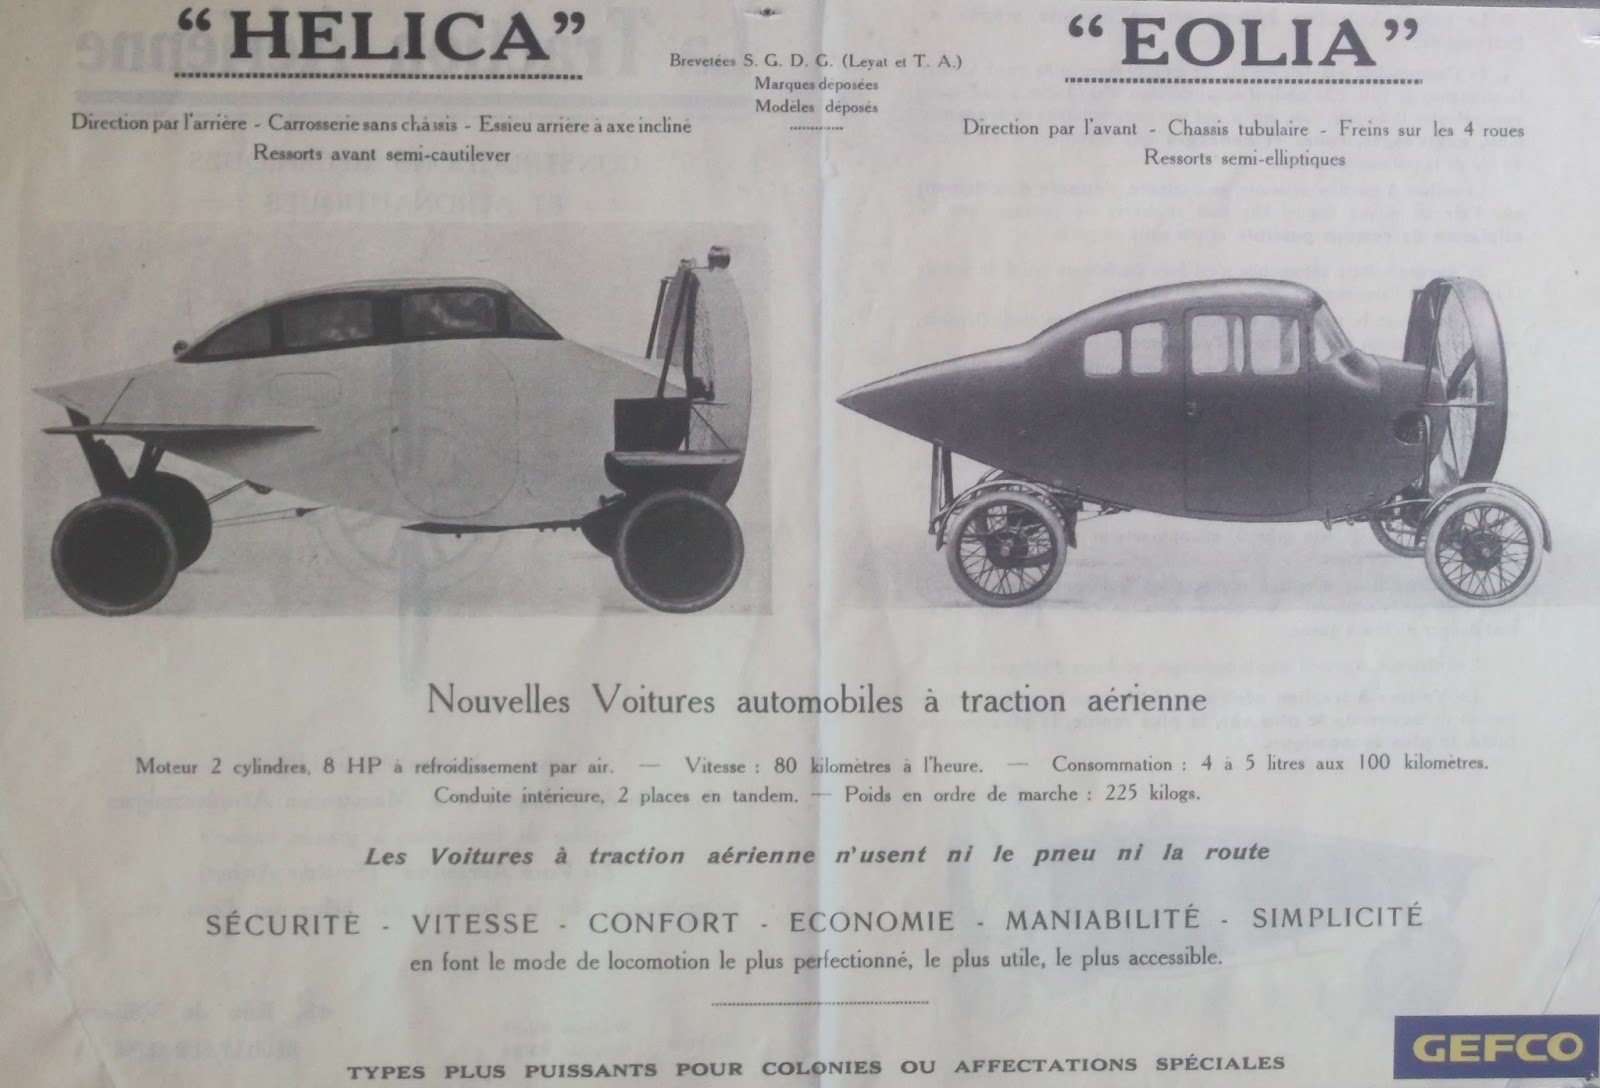 Saloon body styles from a Hélica advertisement. (Picture courtesy challengehelica.blogspot.com.au).